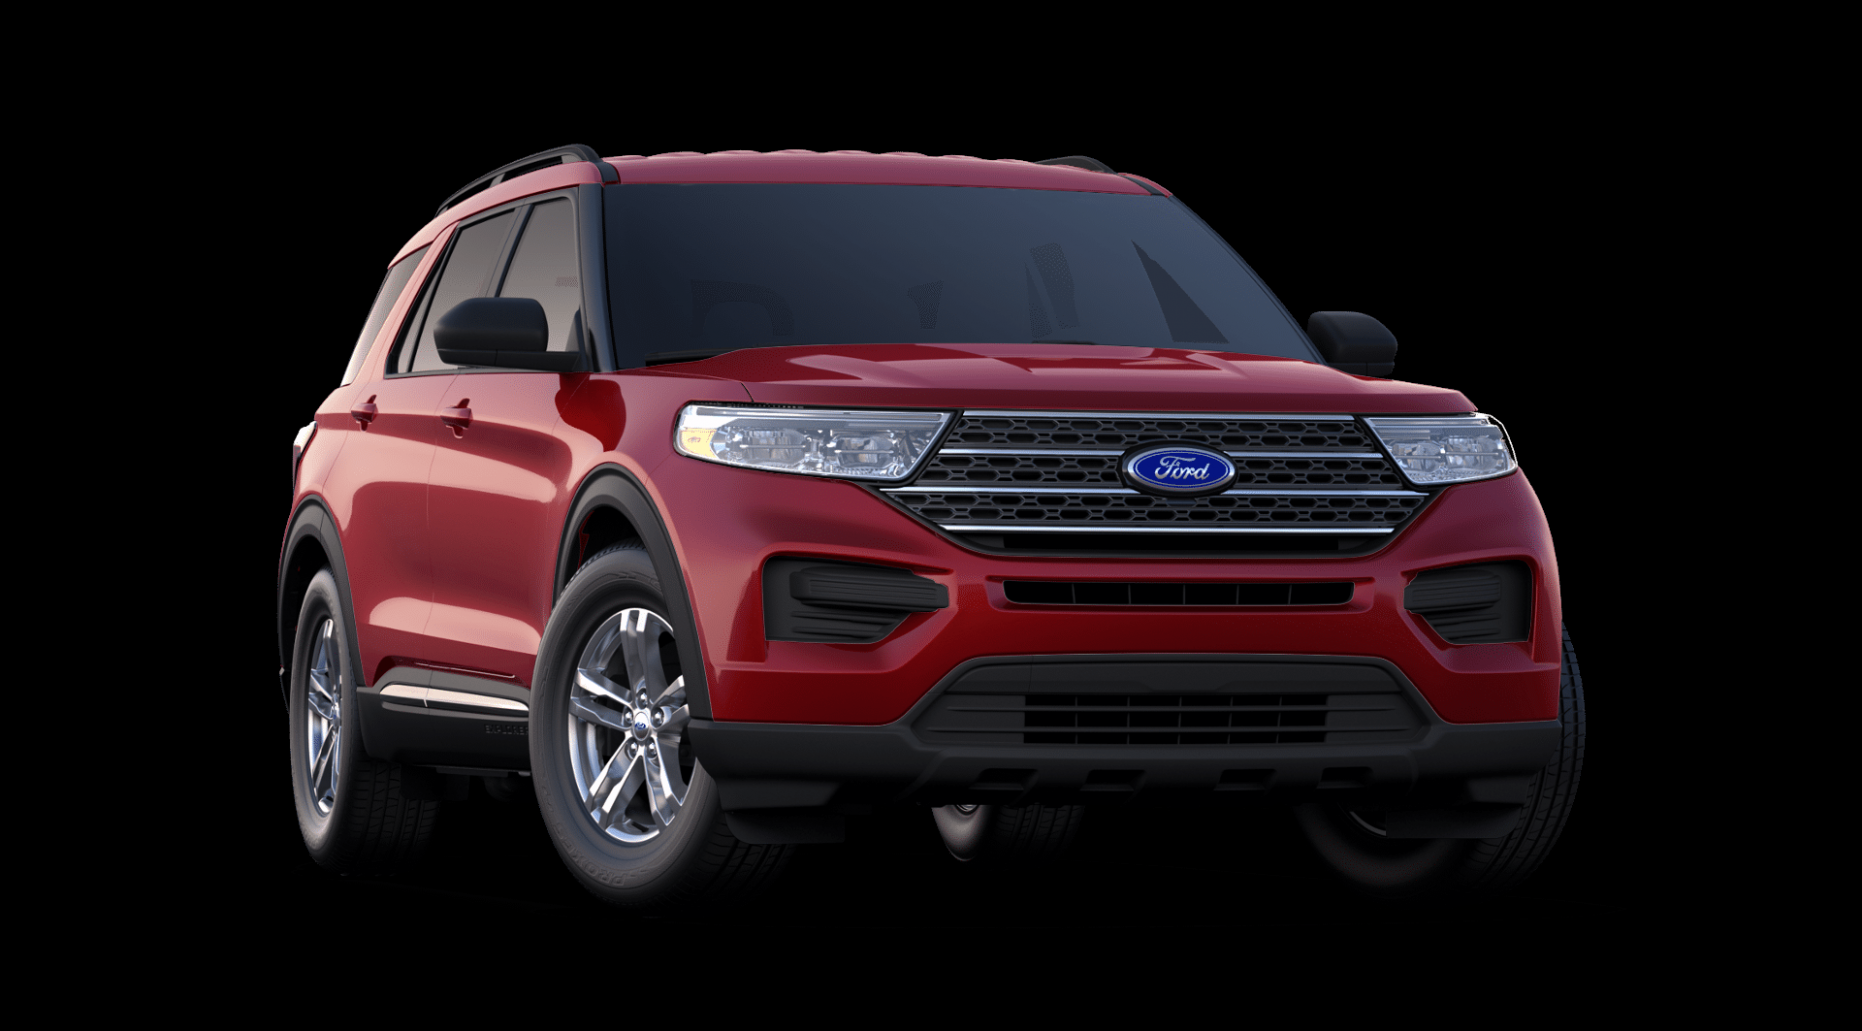 Eliminate Your Fears And Doubts About 2020 Ford Explorer Design Eliminate Your Fears And Doubts About 2020 Ford Explorer Design 2 2020 Ford Explorer Ford Explorer New Ford Explorer